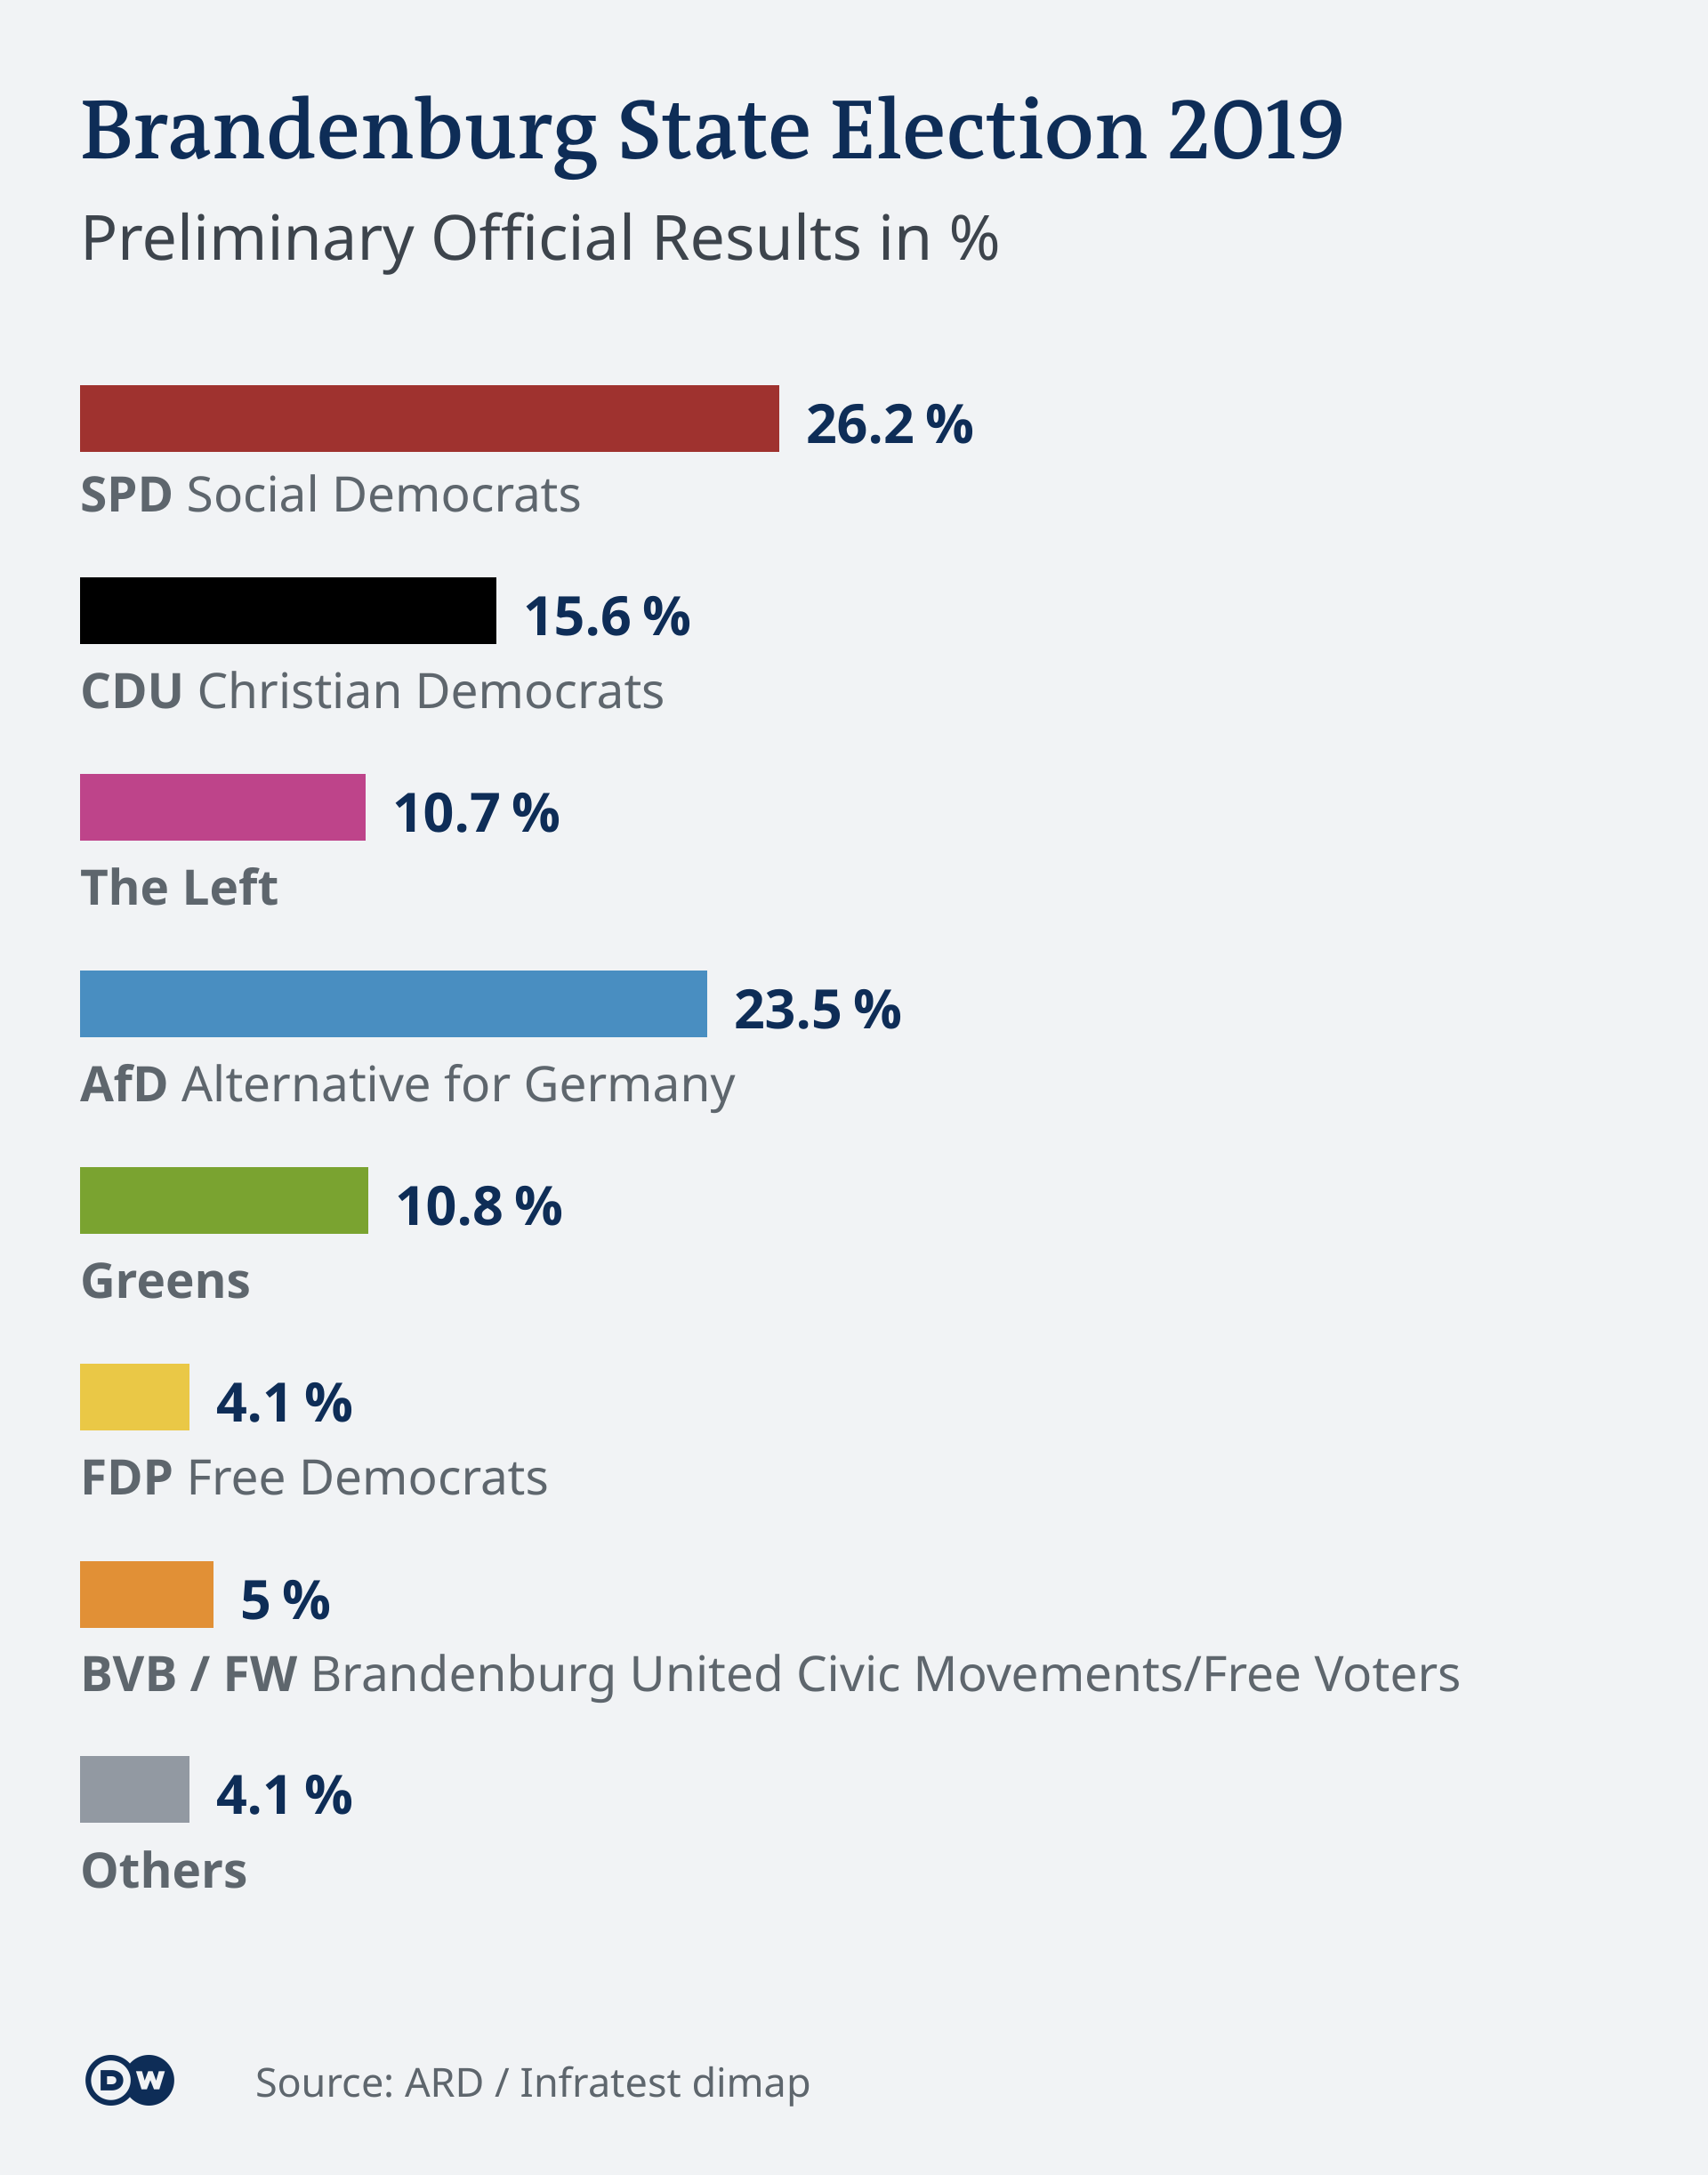 Brandenburg state election results 2019